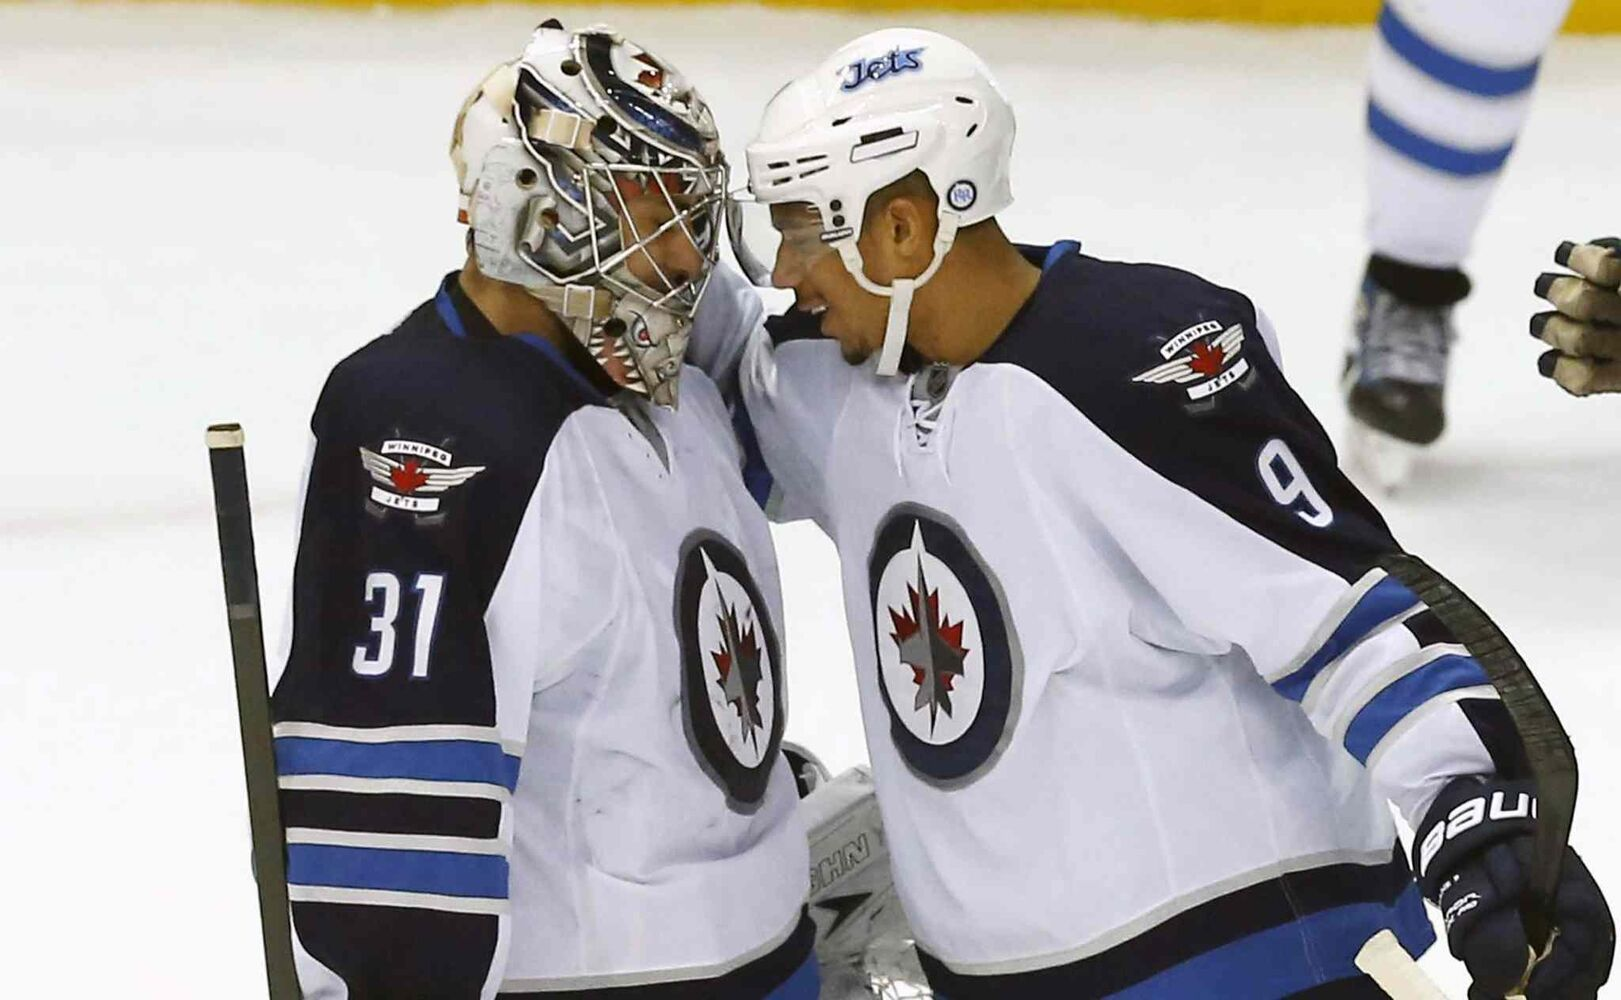 Winnipeg Jets goalie Ondrej Pavelec is congratulated by teammate Evander Kane after the win against the Detroit Red Wings. (PAUL SANCYA / THE ASSOCIATED PRESS)